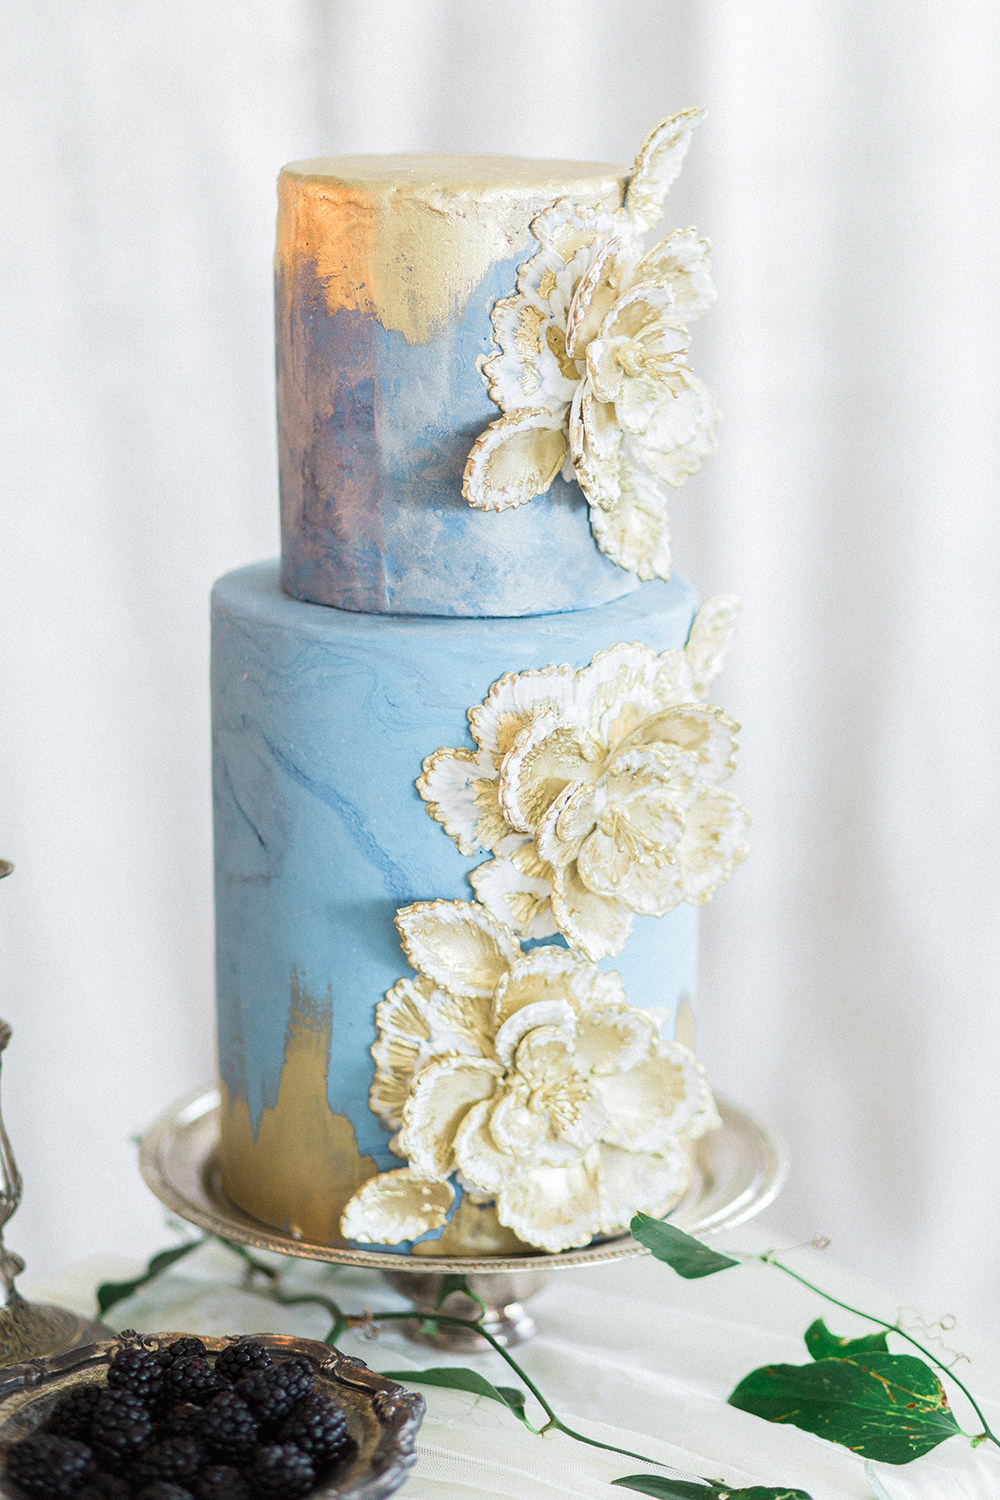 blue and gold wedding cake - photo by Erica J Photography http://ruffledblog.com/old-world-wedding-editorial-at-vizcaya-museum